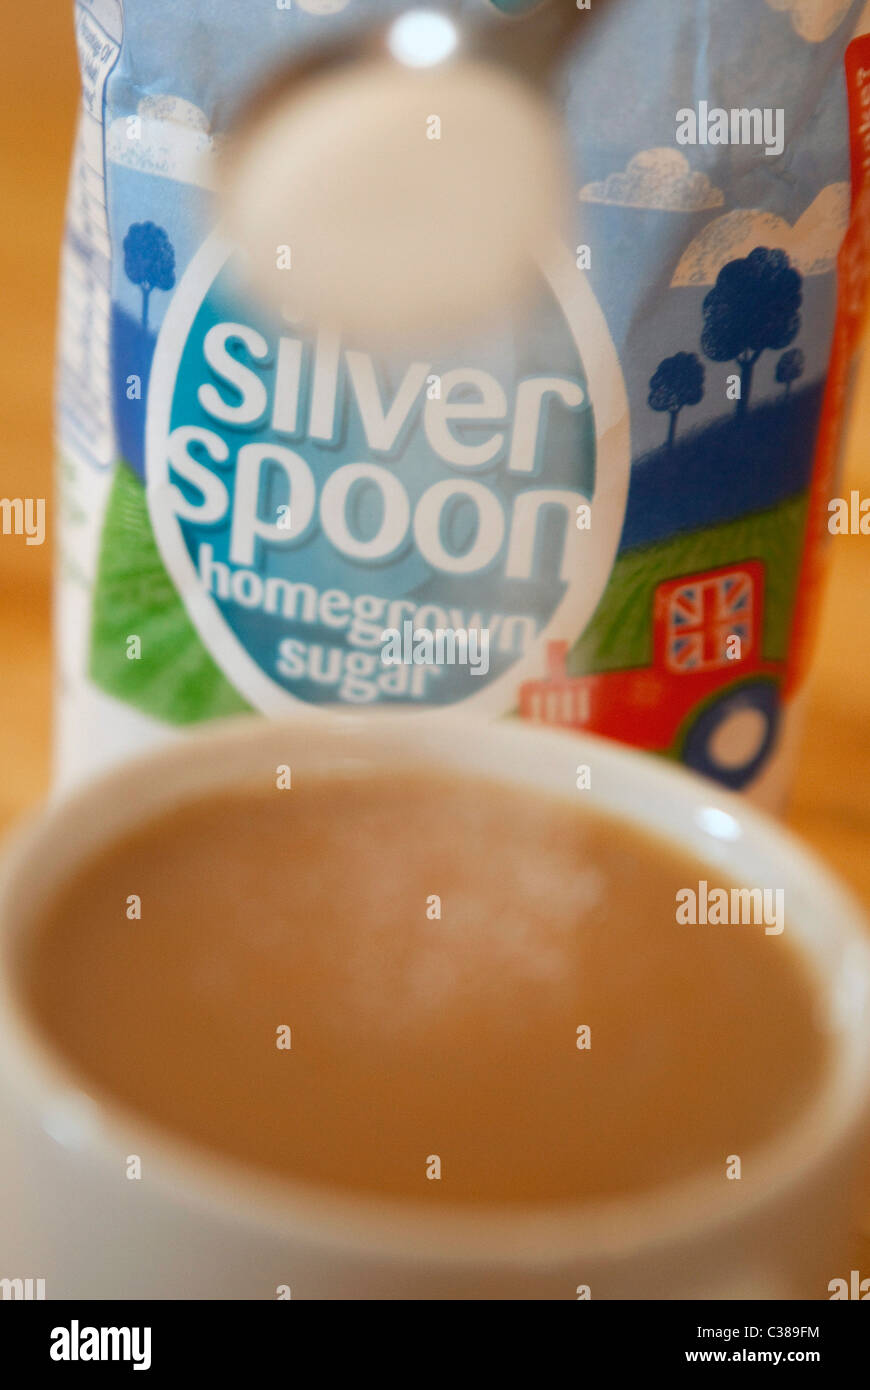 Illustrative image of Silver Spoon Sugar, an Associated British Foods brand. - Stock Image